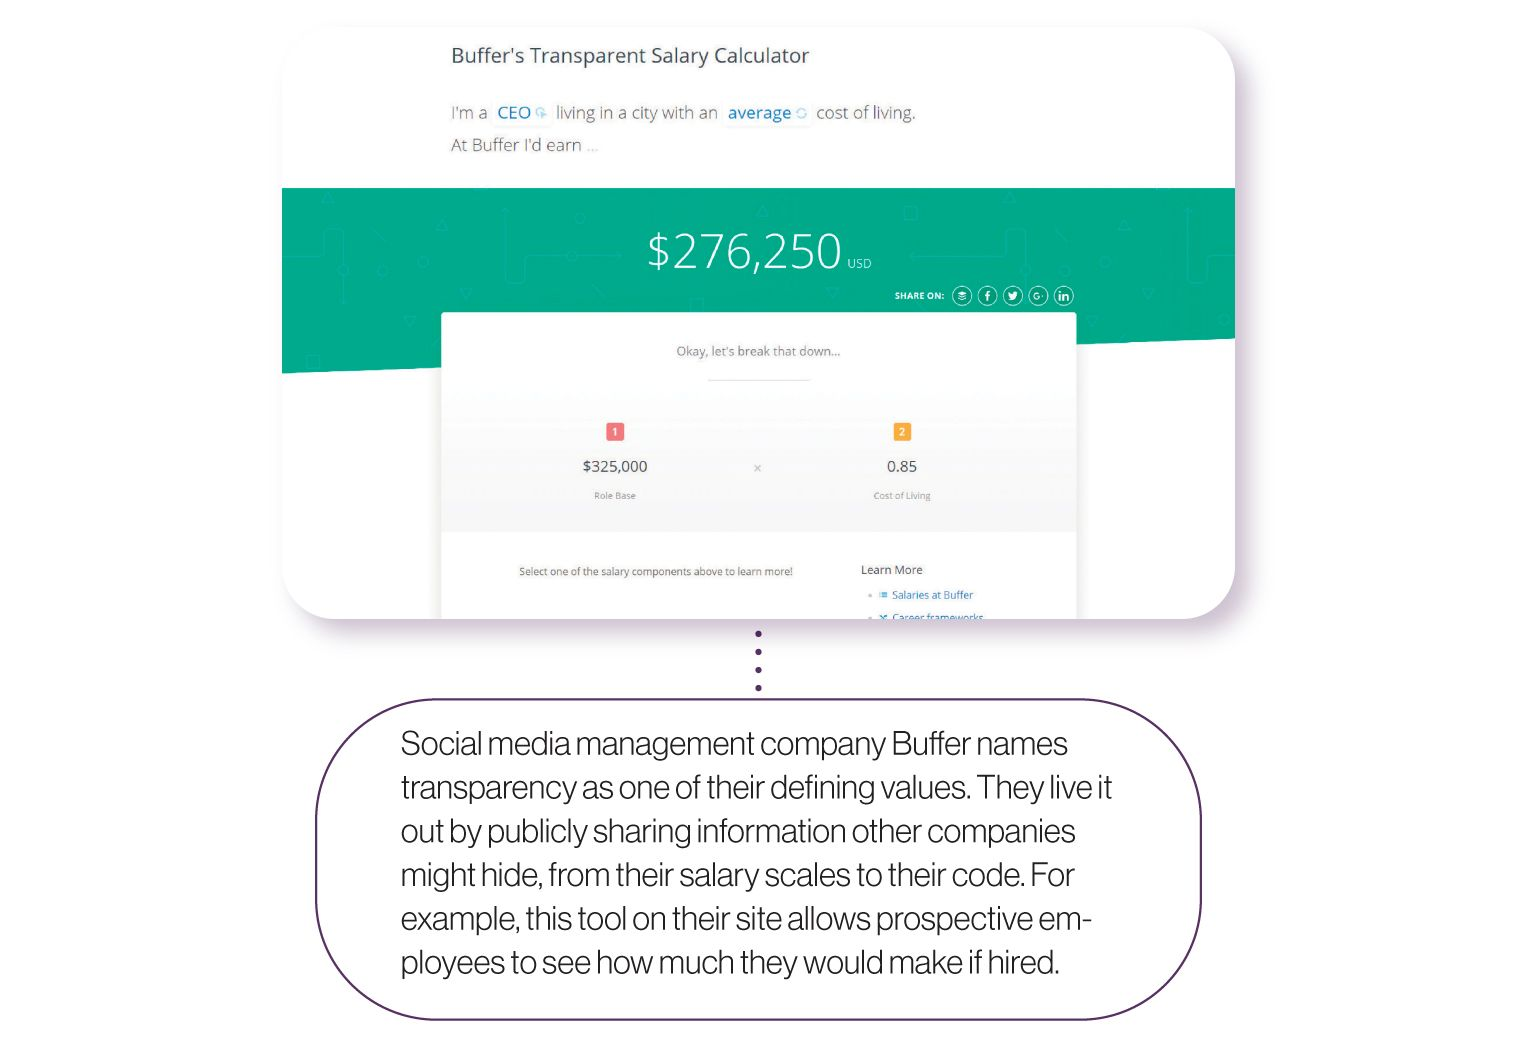 Image: An example from social media management company Buffer's salary calculator, which allows prospective employees to see how much they would make if they were hired. Buffer names transparency as one of their defining values. They live it out by publicly sharing information other companies might hide, from their salary scale to their code.